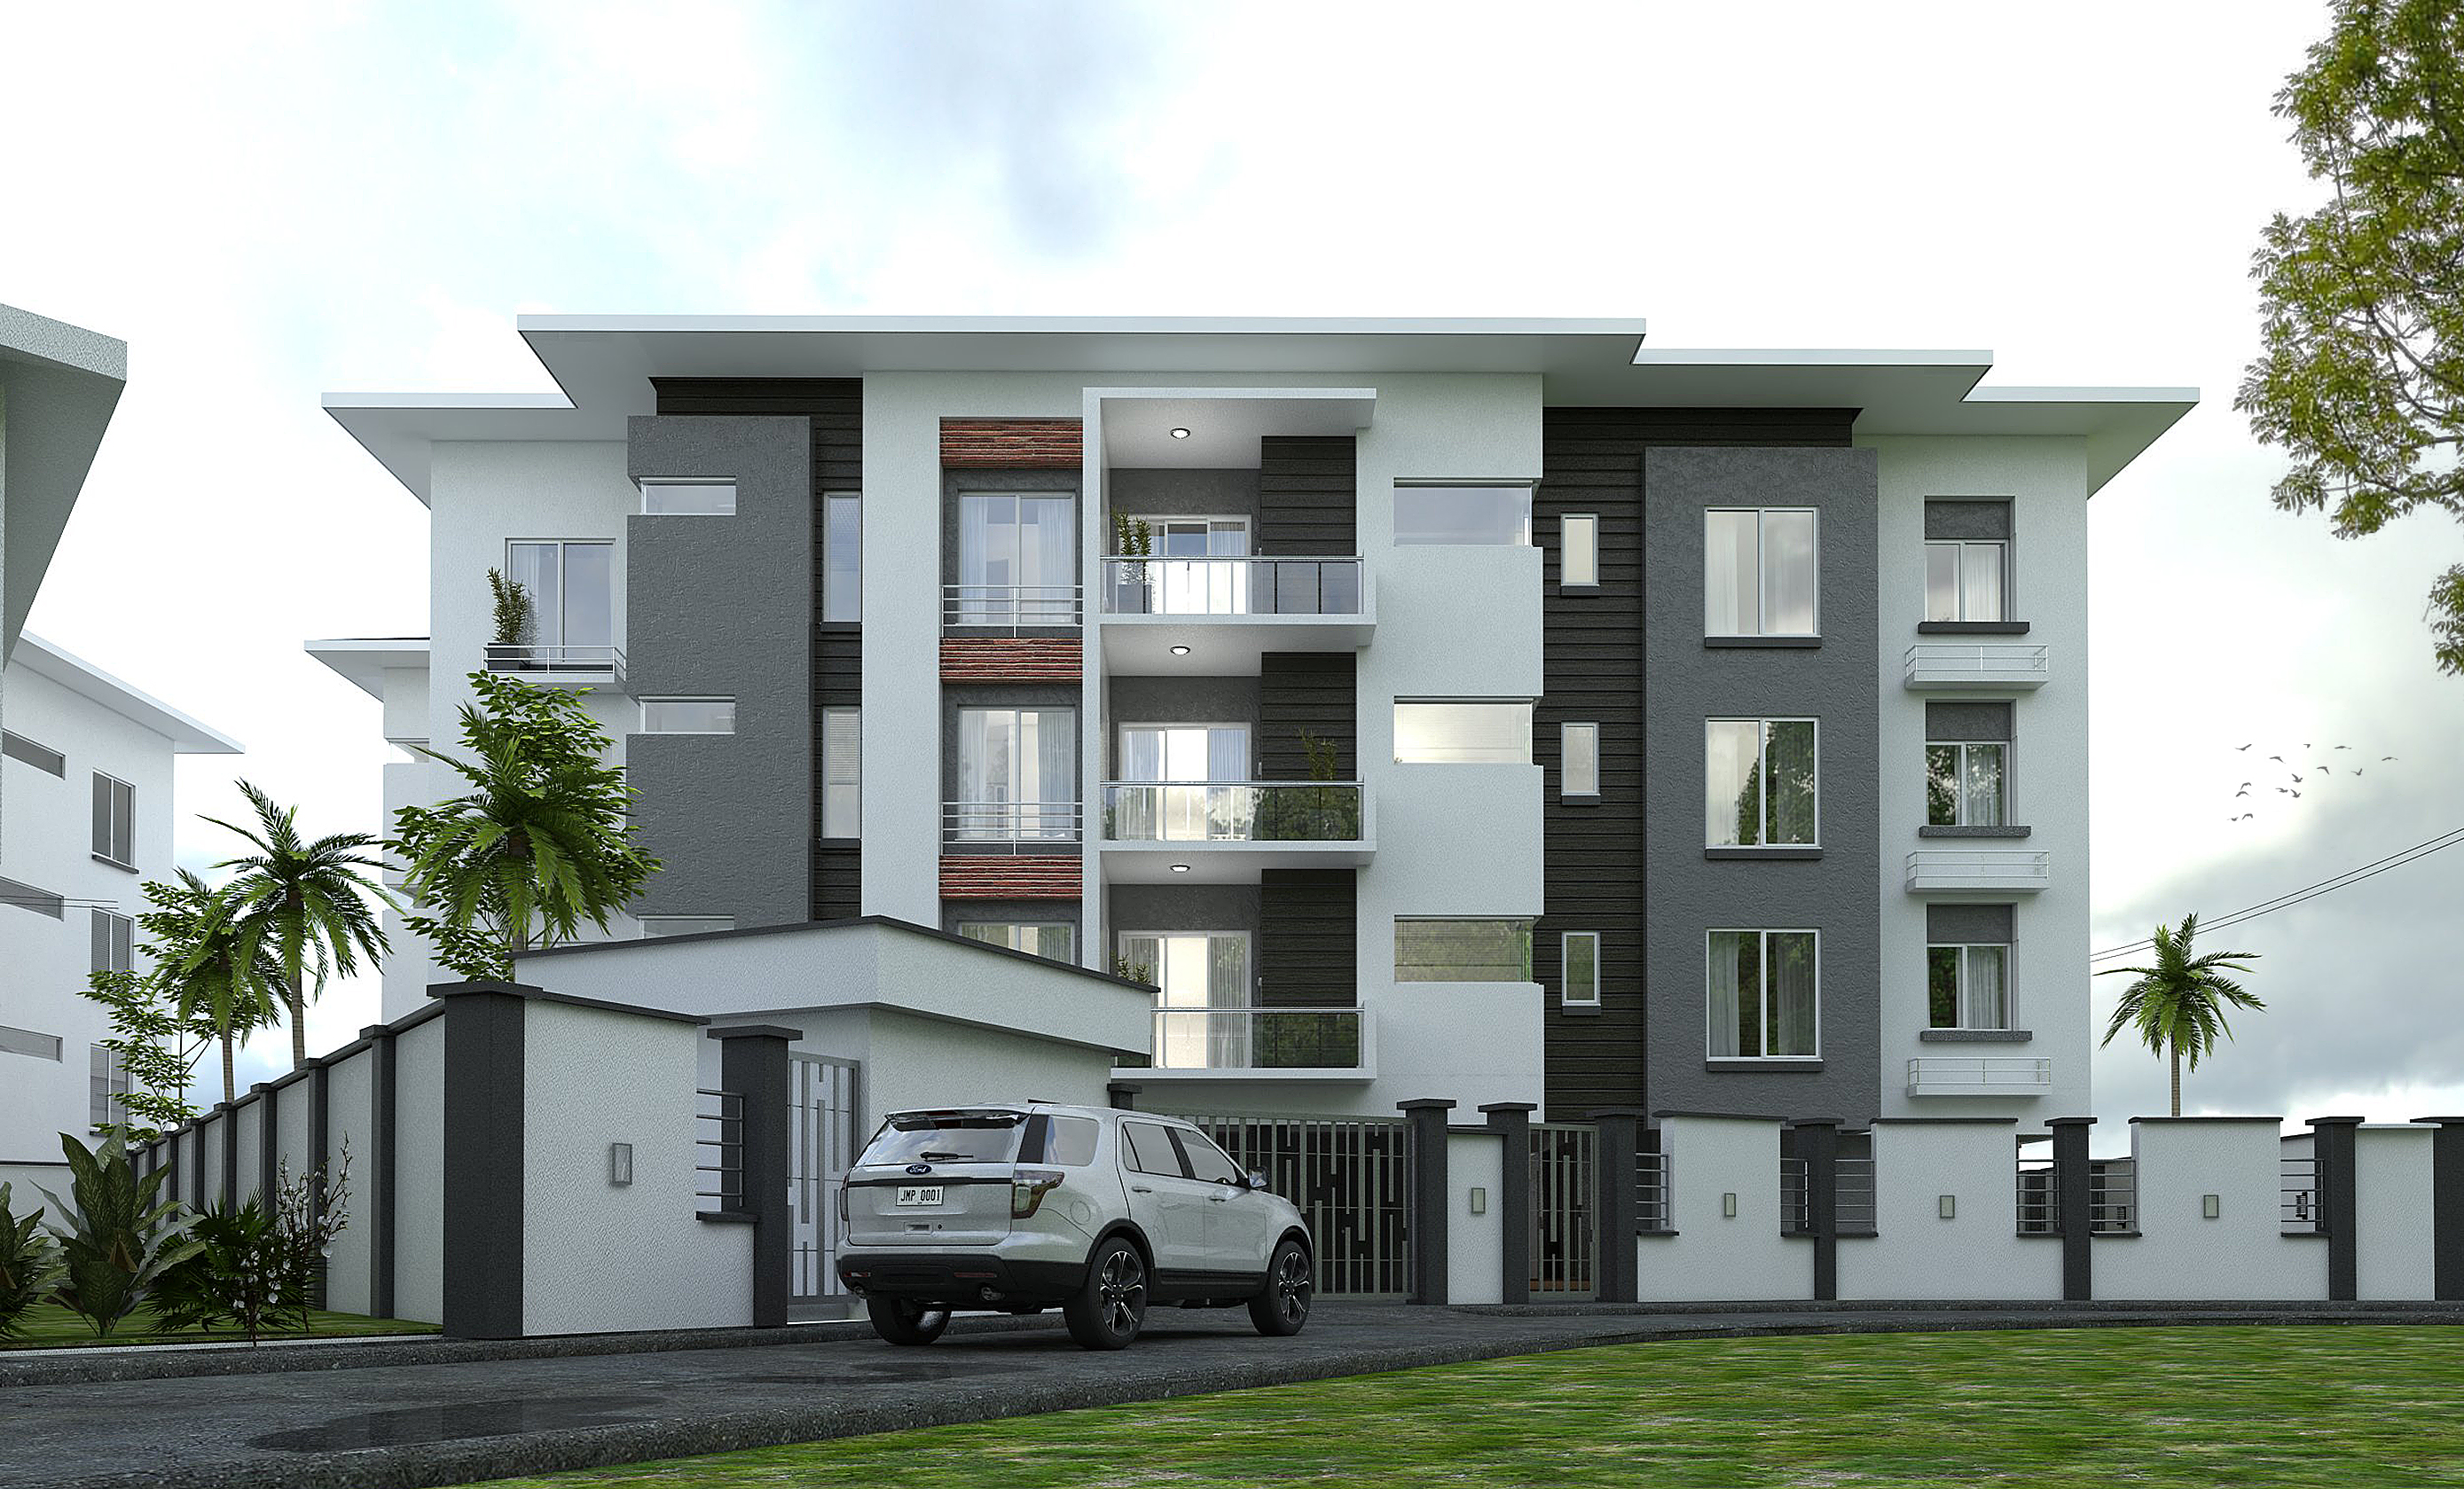 3. SKYWIDE RESIDENCES